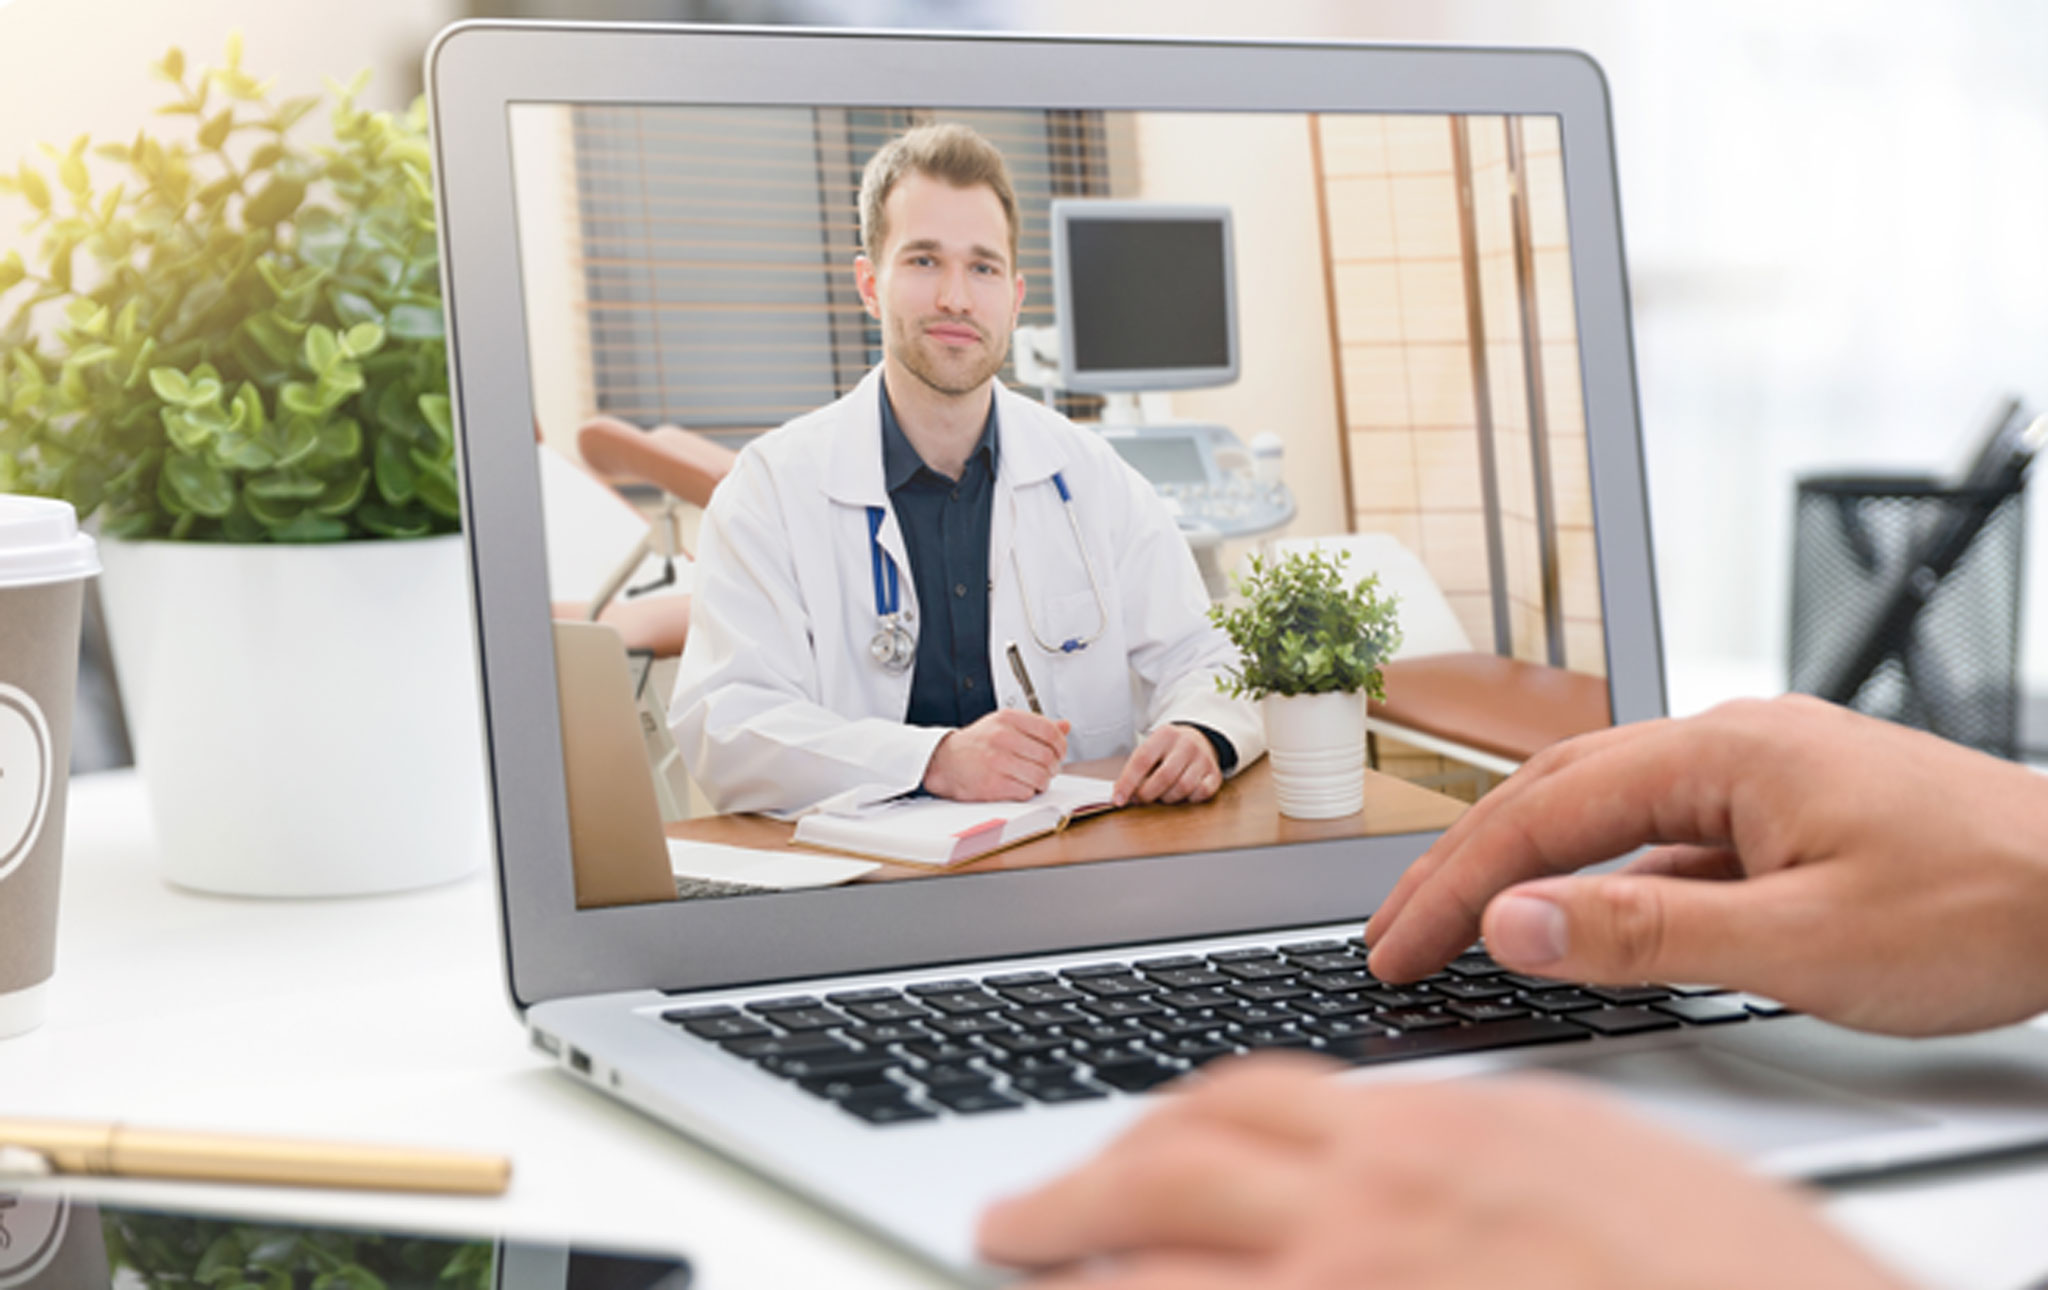 Doctor on computer screen